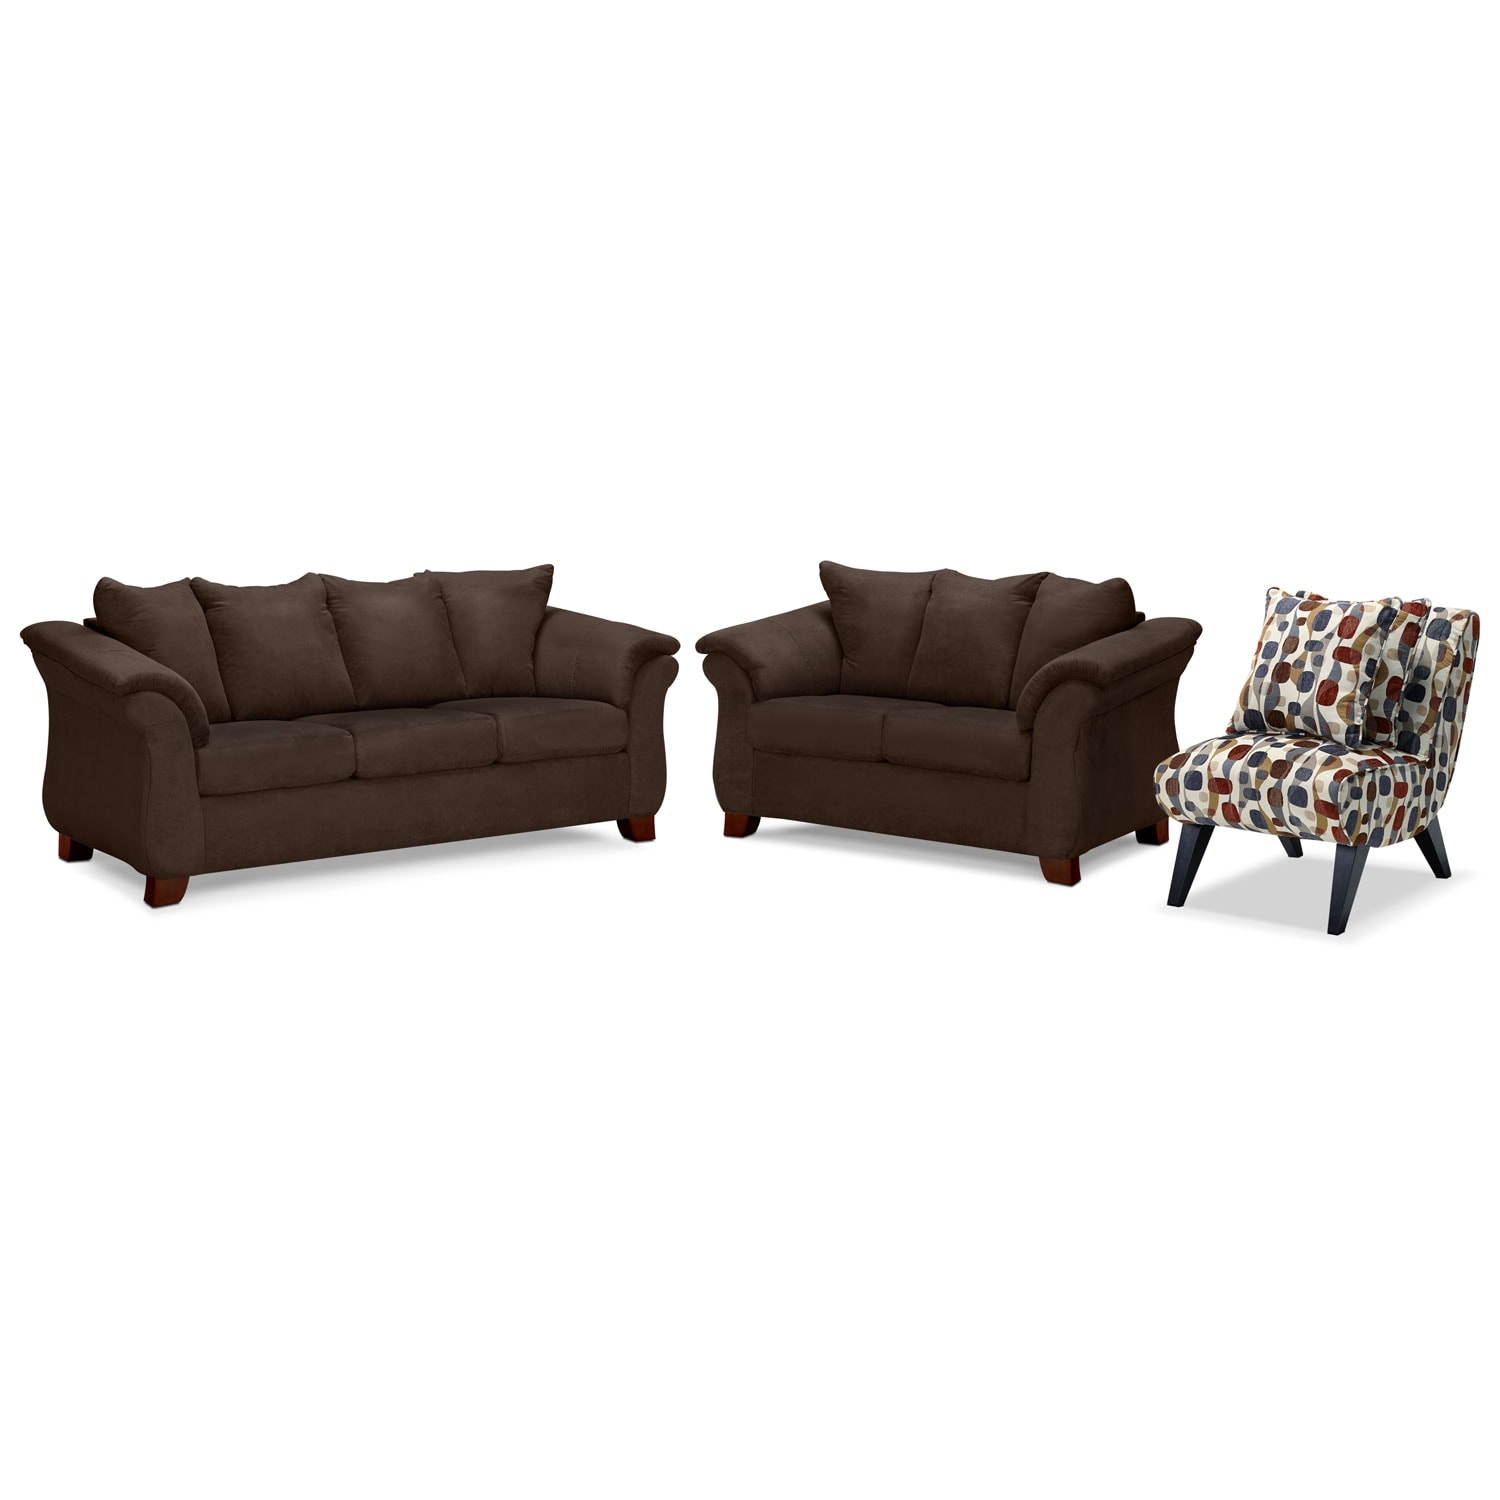 Living Room Furniture   Adrian Sofa, Loveseat And Accent Chair Set    Chocolate